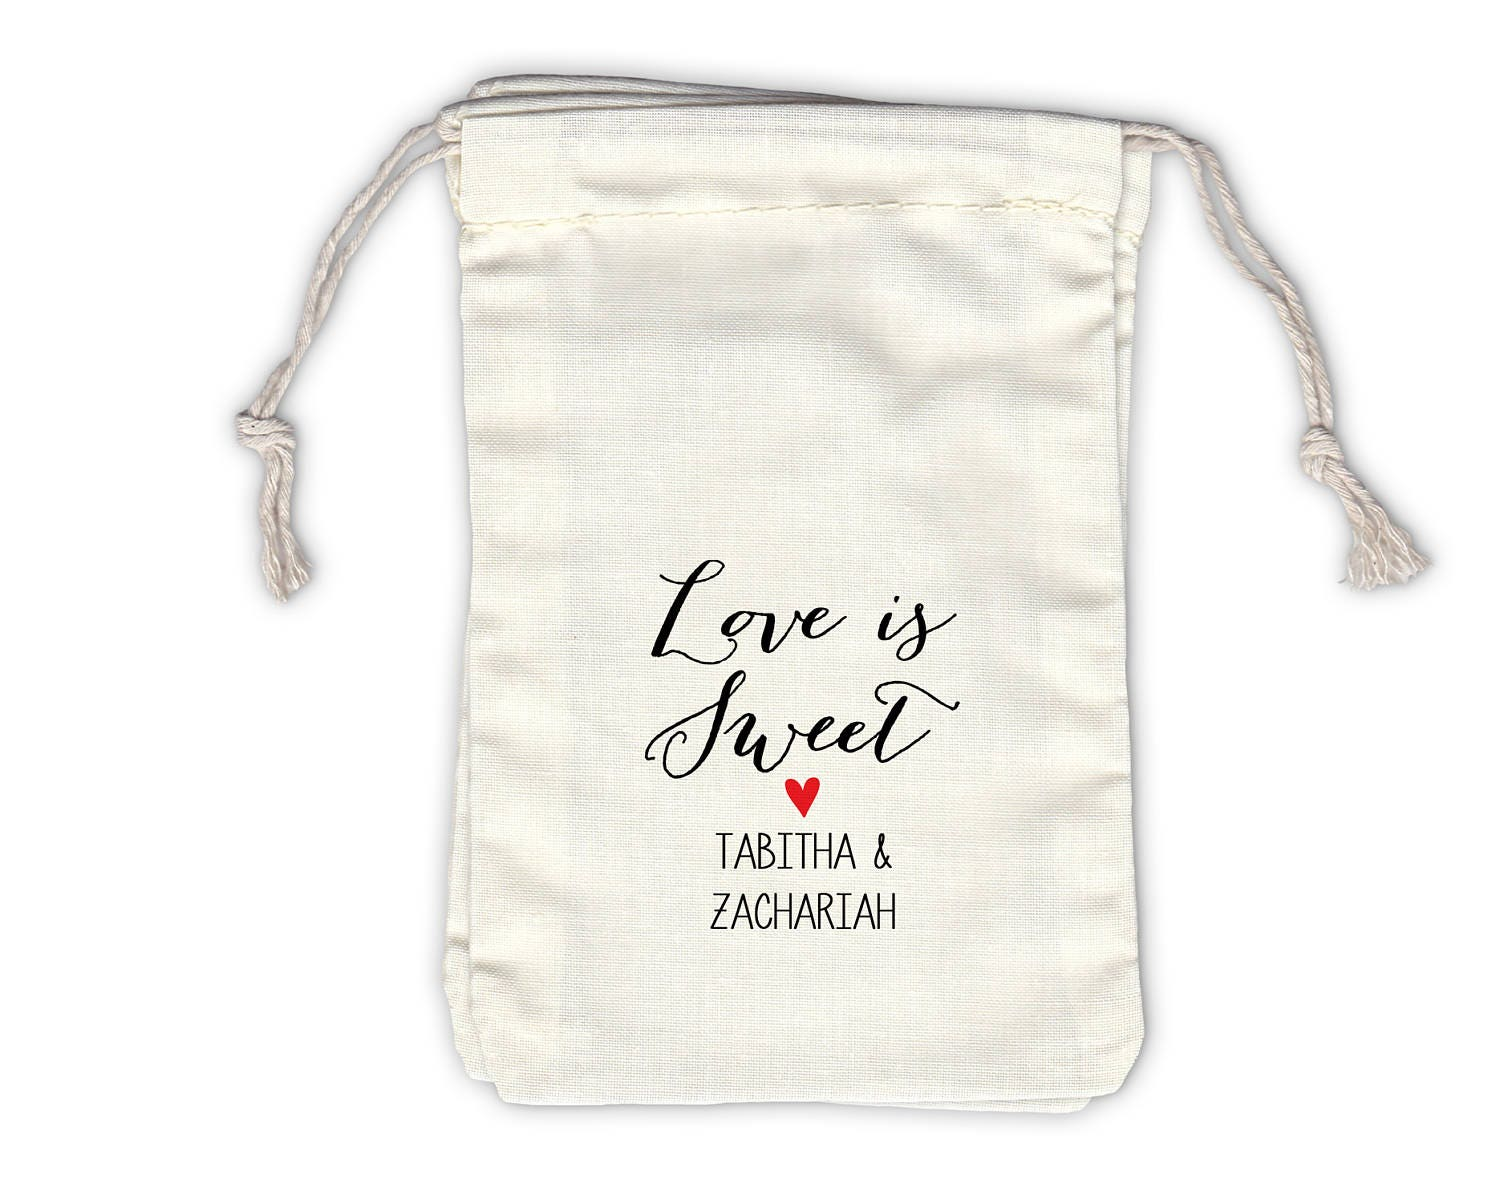 Love Is Sweet Personalized Cotton Bags for Wedding Favors in Black ...